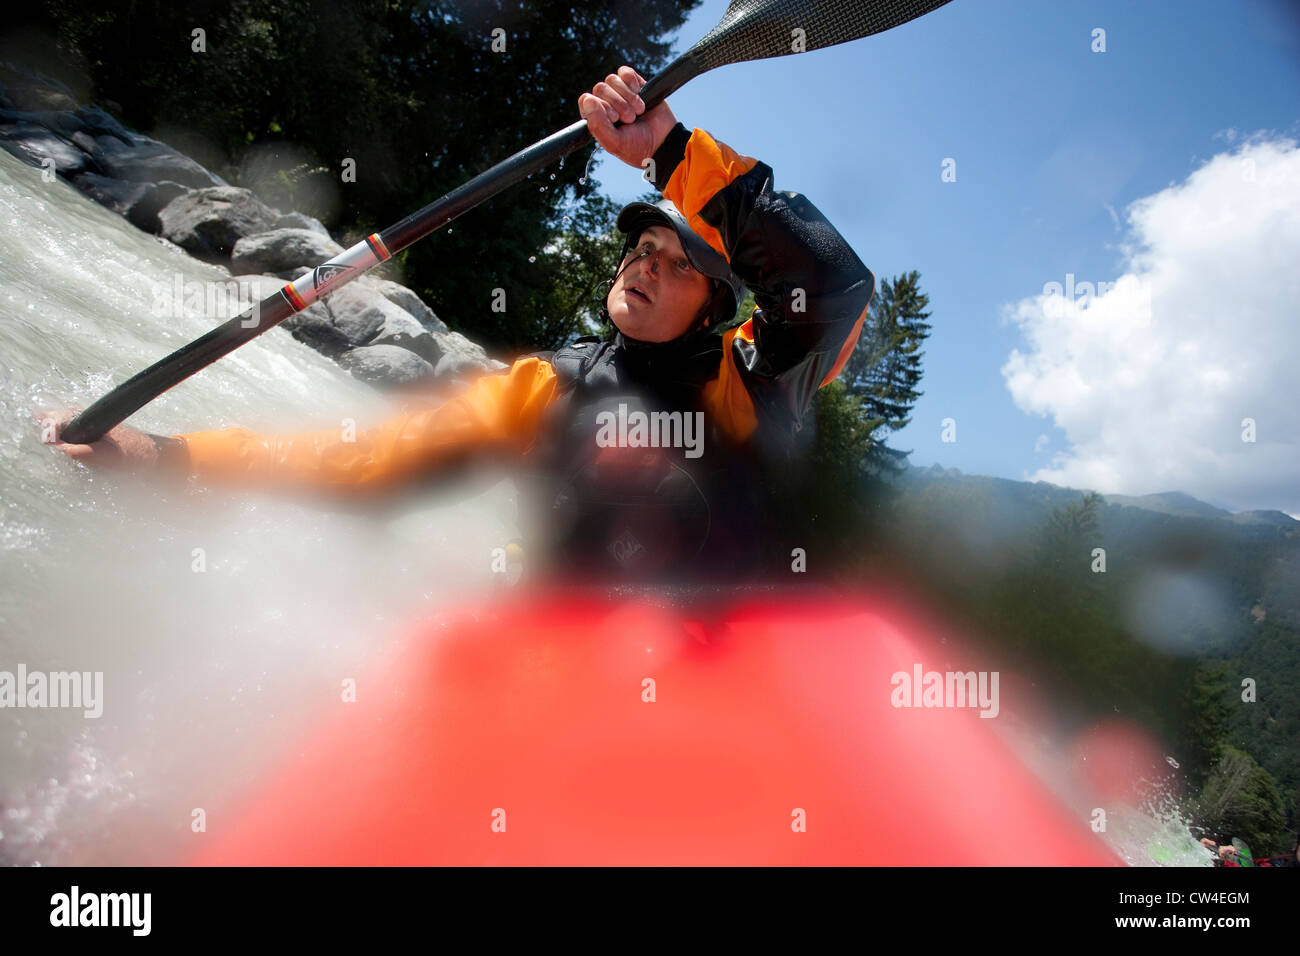 Whitewater kayaker turning into an eddy on Inn River near Pfunds, Austria - Stock Image